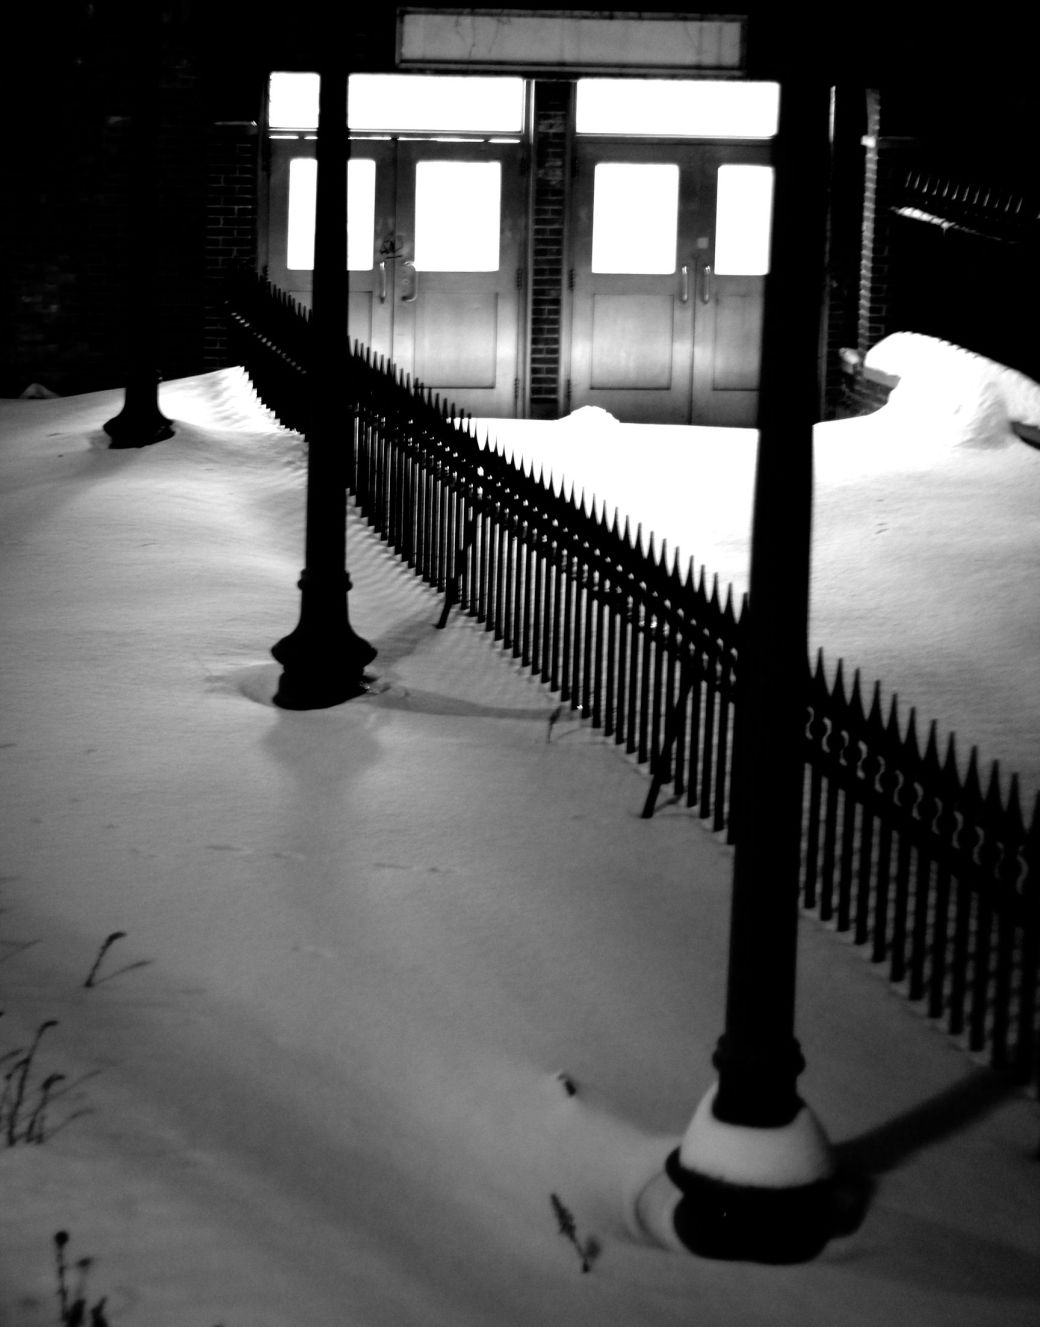 boston boylston street station entry snow